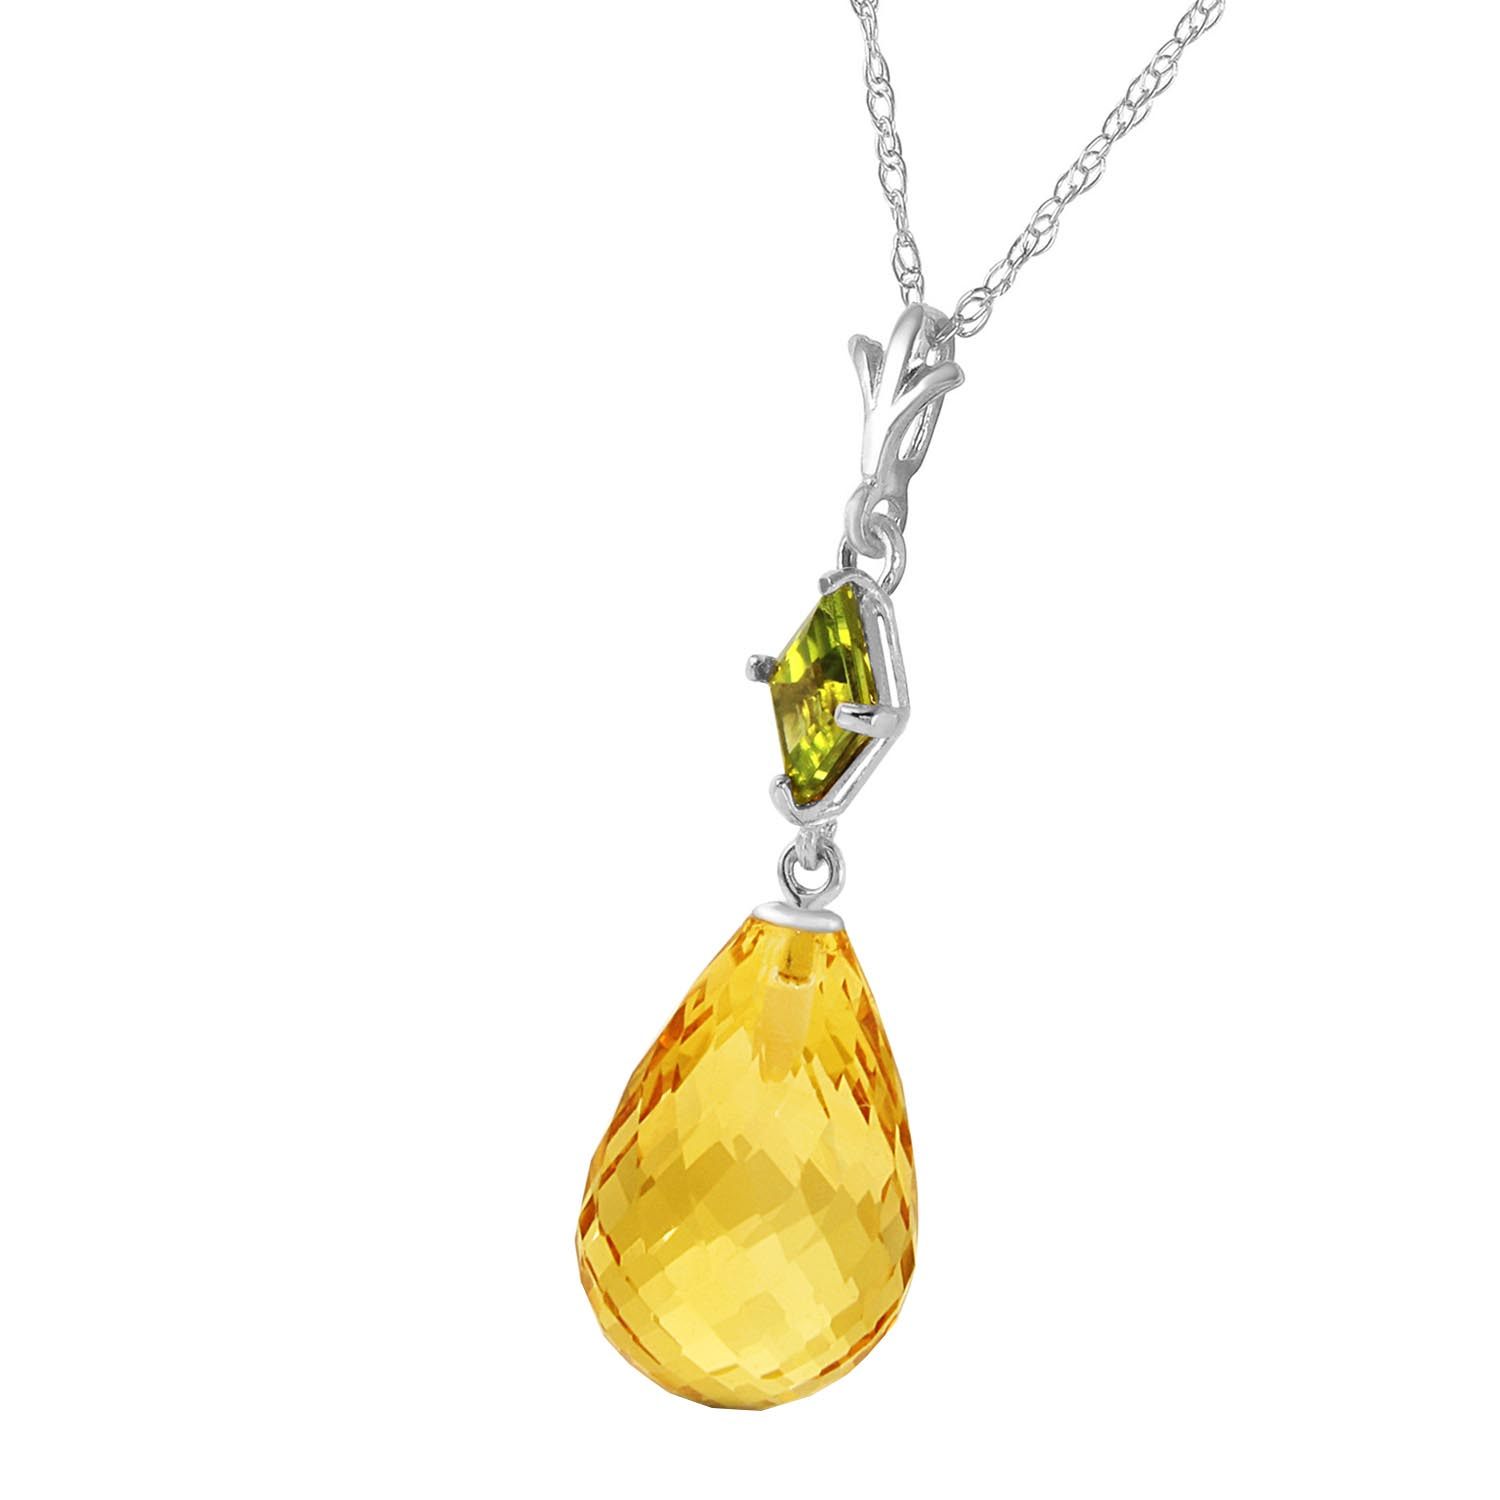 Citrine and Peridot Pendant Necklace 5.5ctw in 9ct White Gold